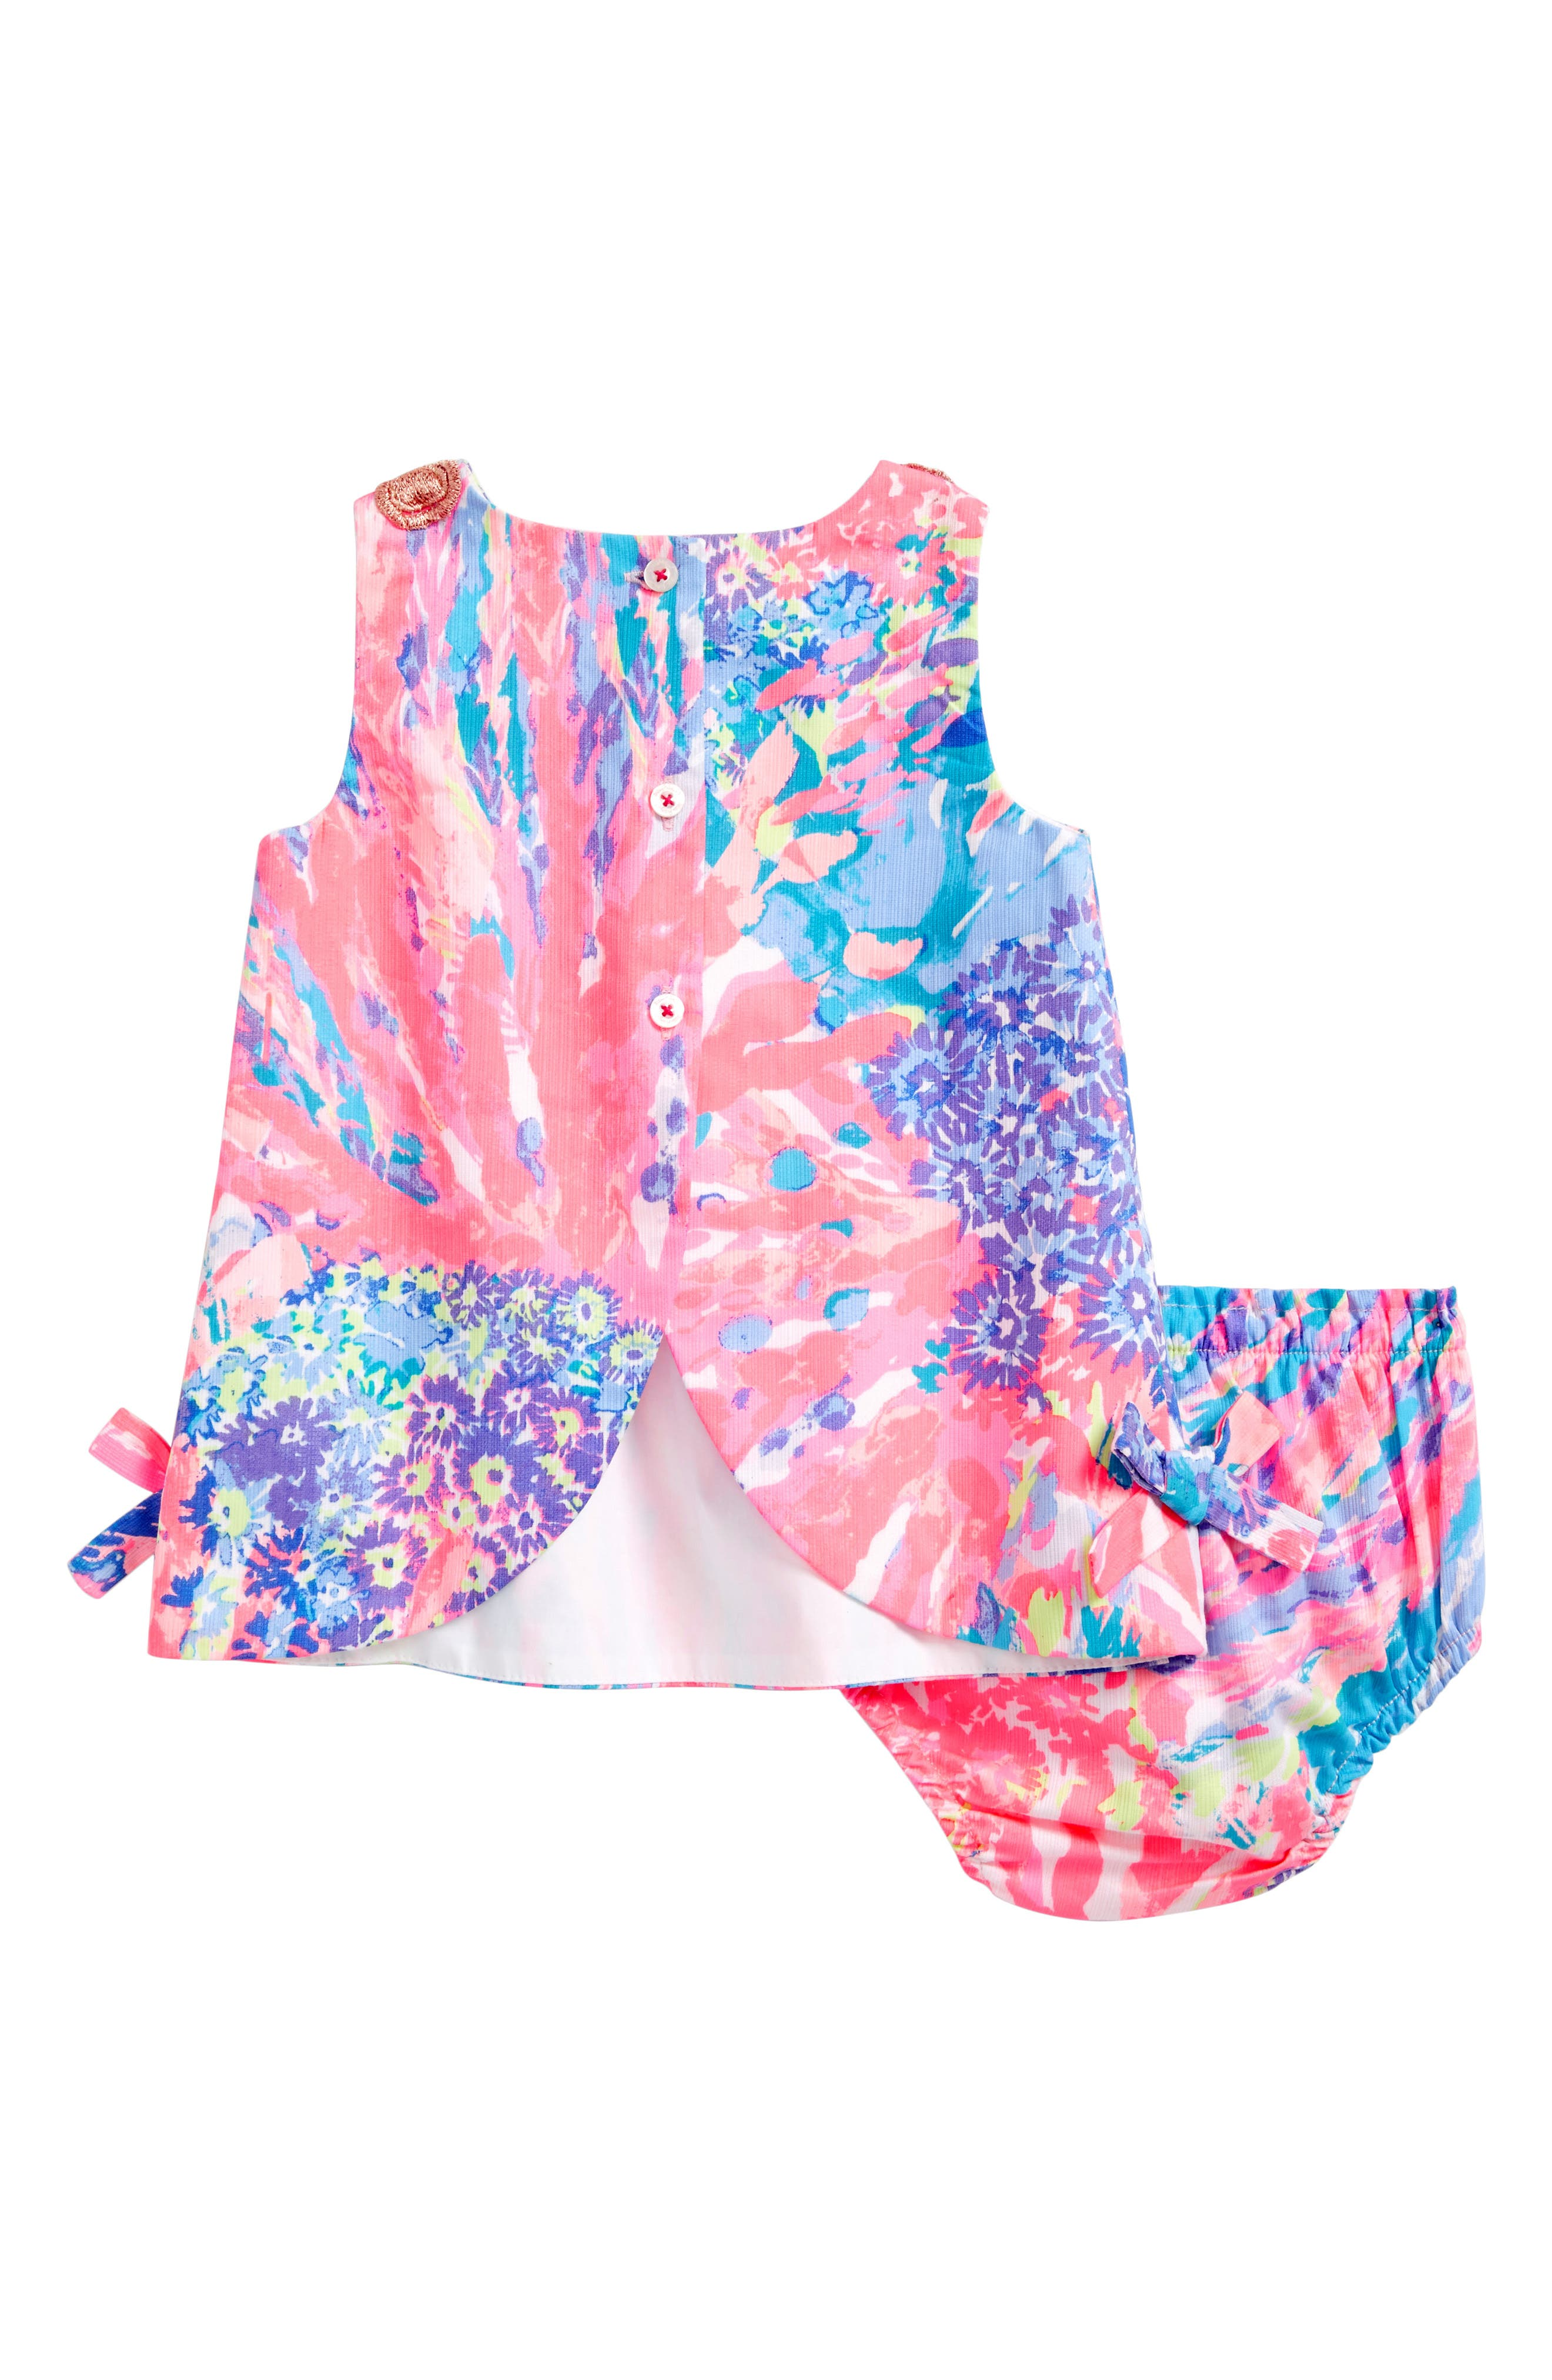 Baby Lilly Shift Dress,                             Alternate thumbnail 2, color,                             Multi Rainbow Soleil